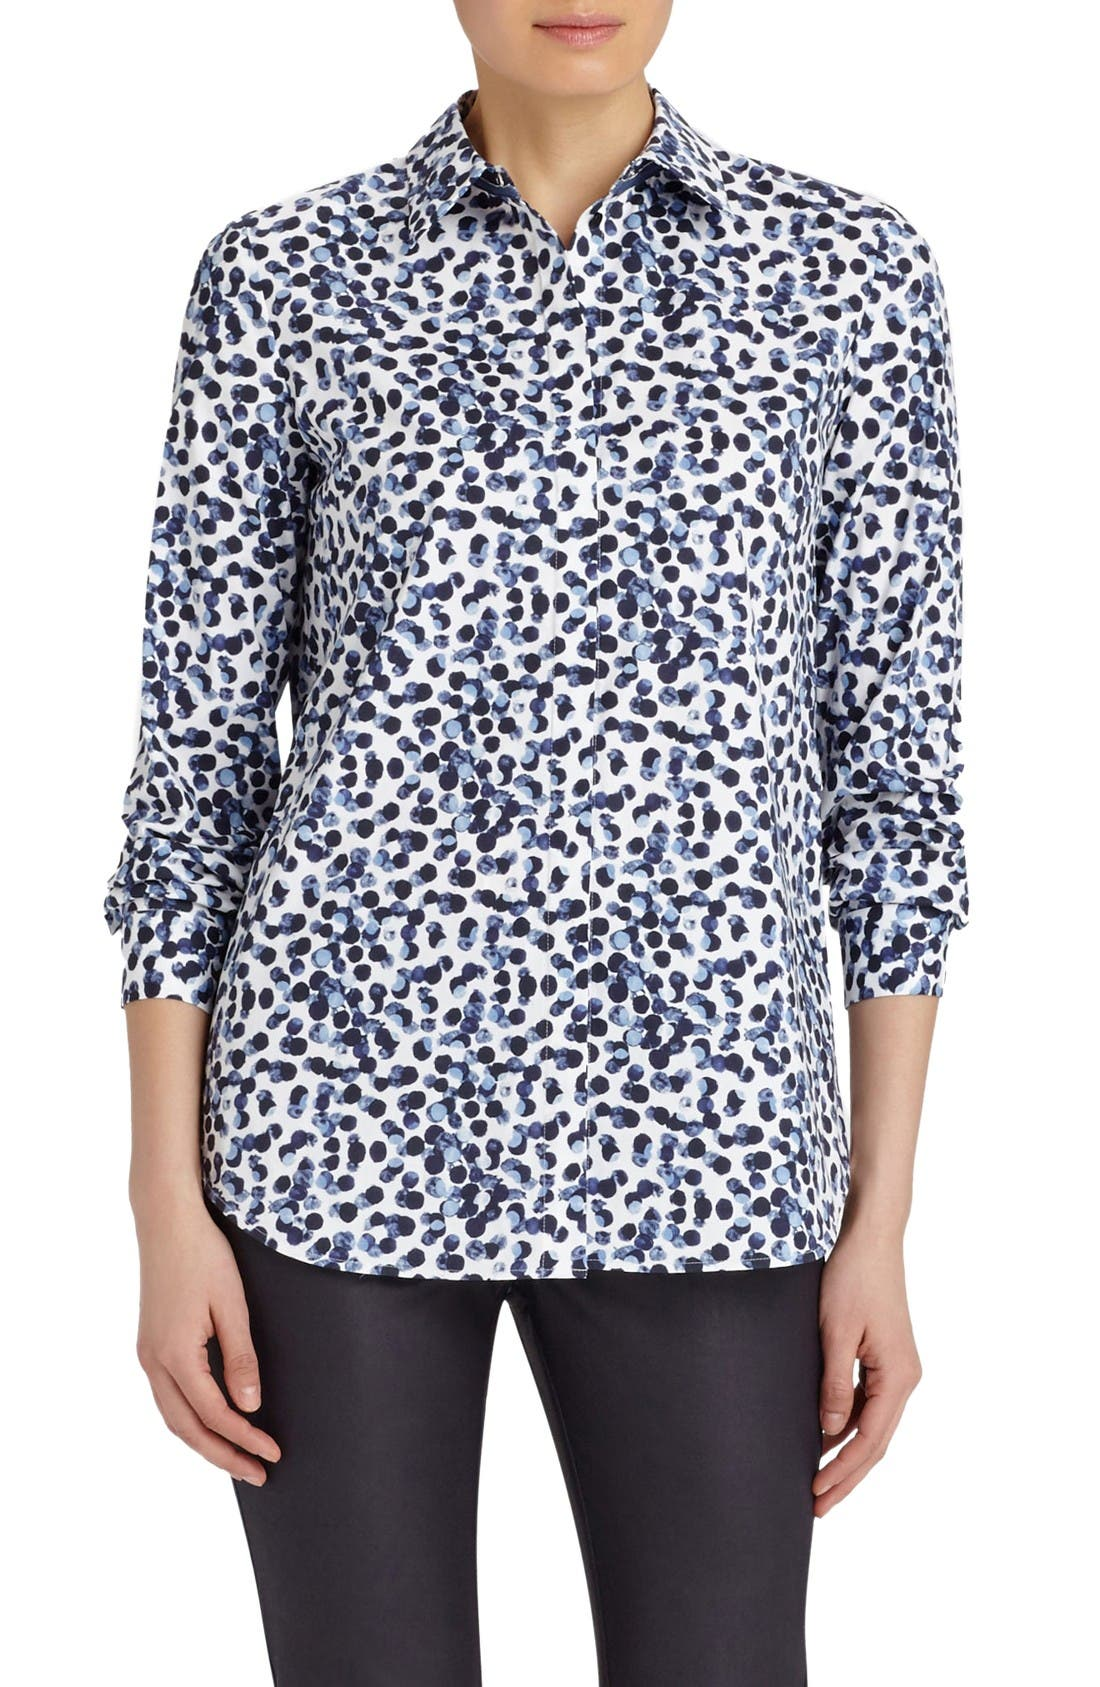 LAFAYETTE 148 NEW YORK Brody Print Stretch Cotton